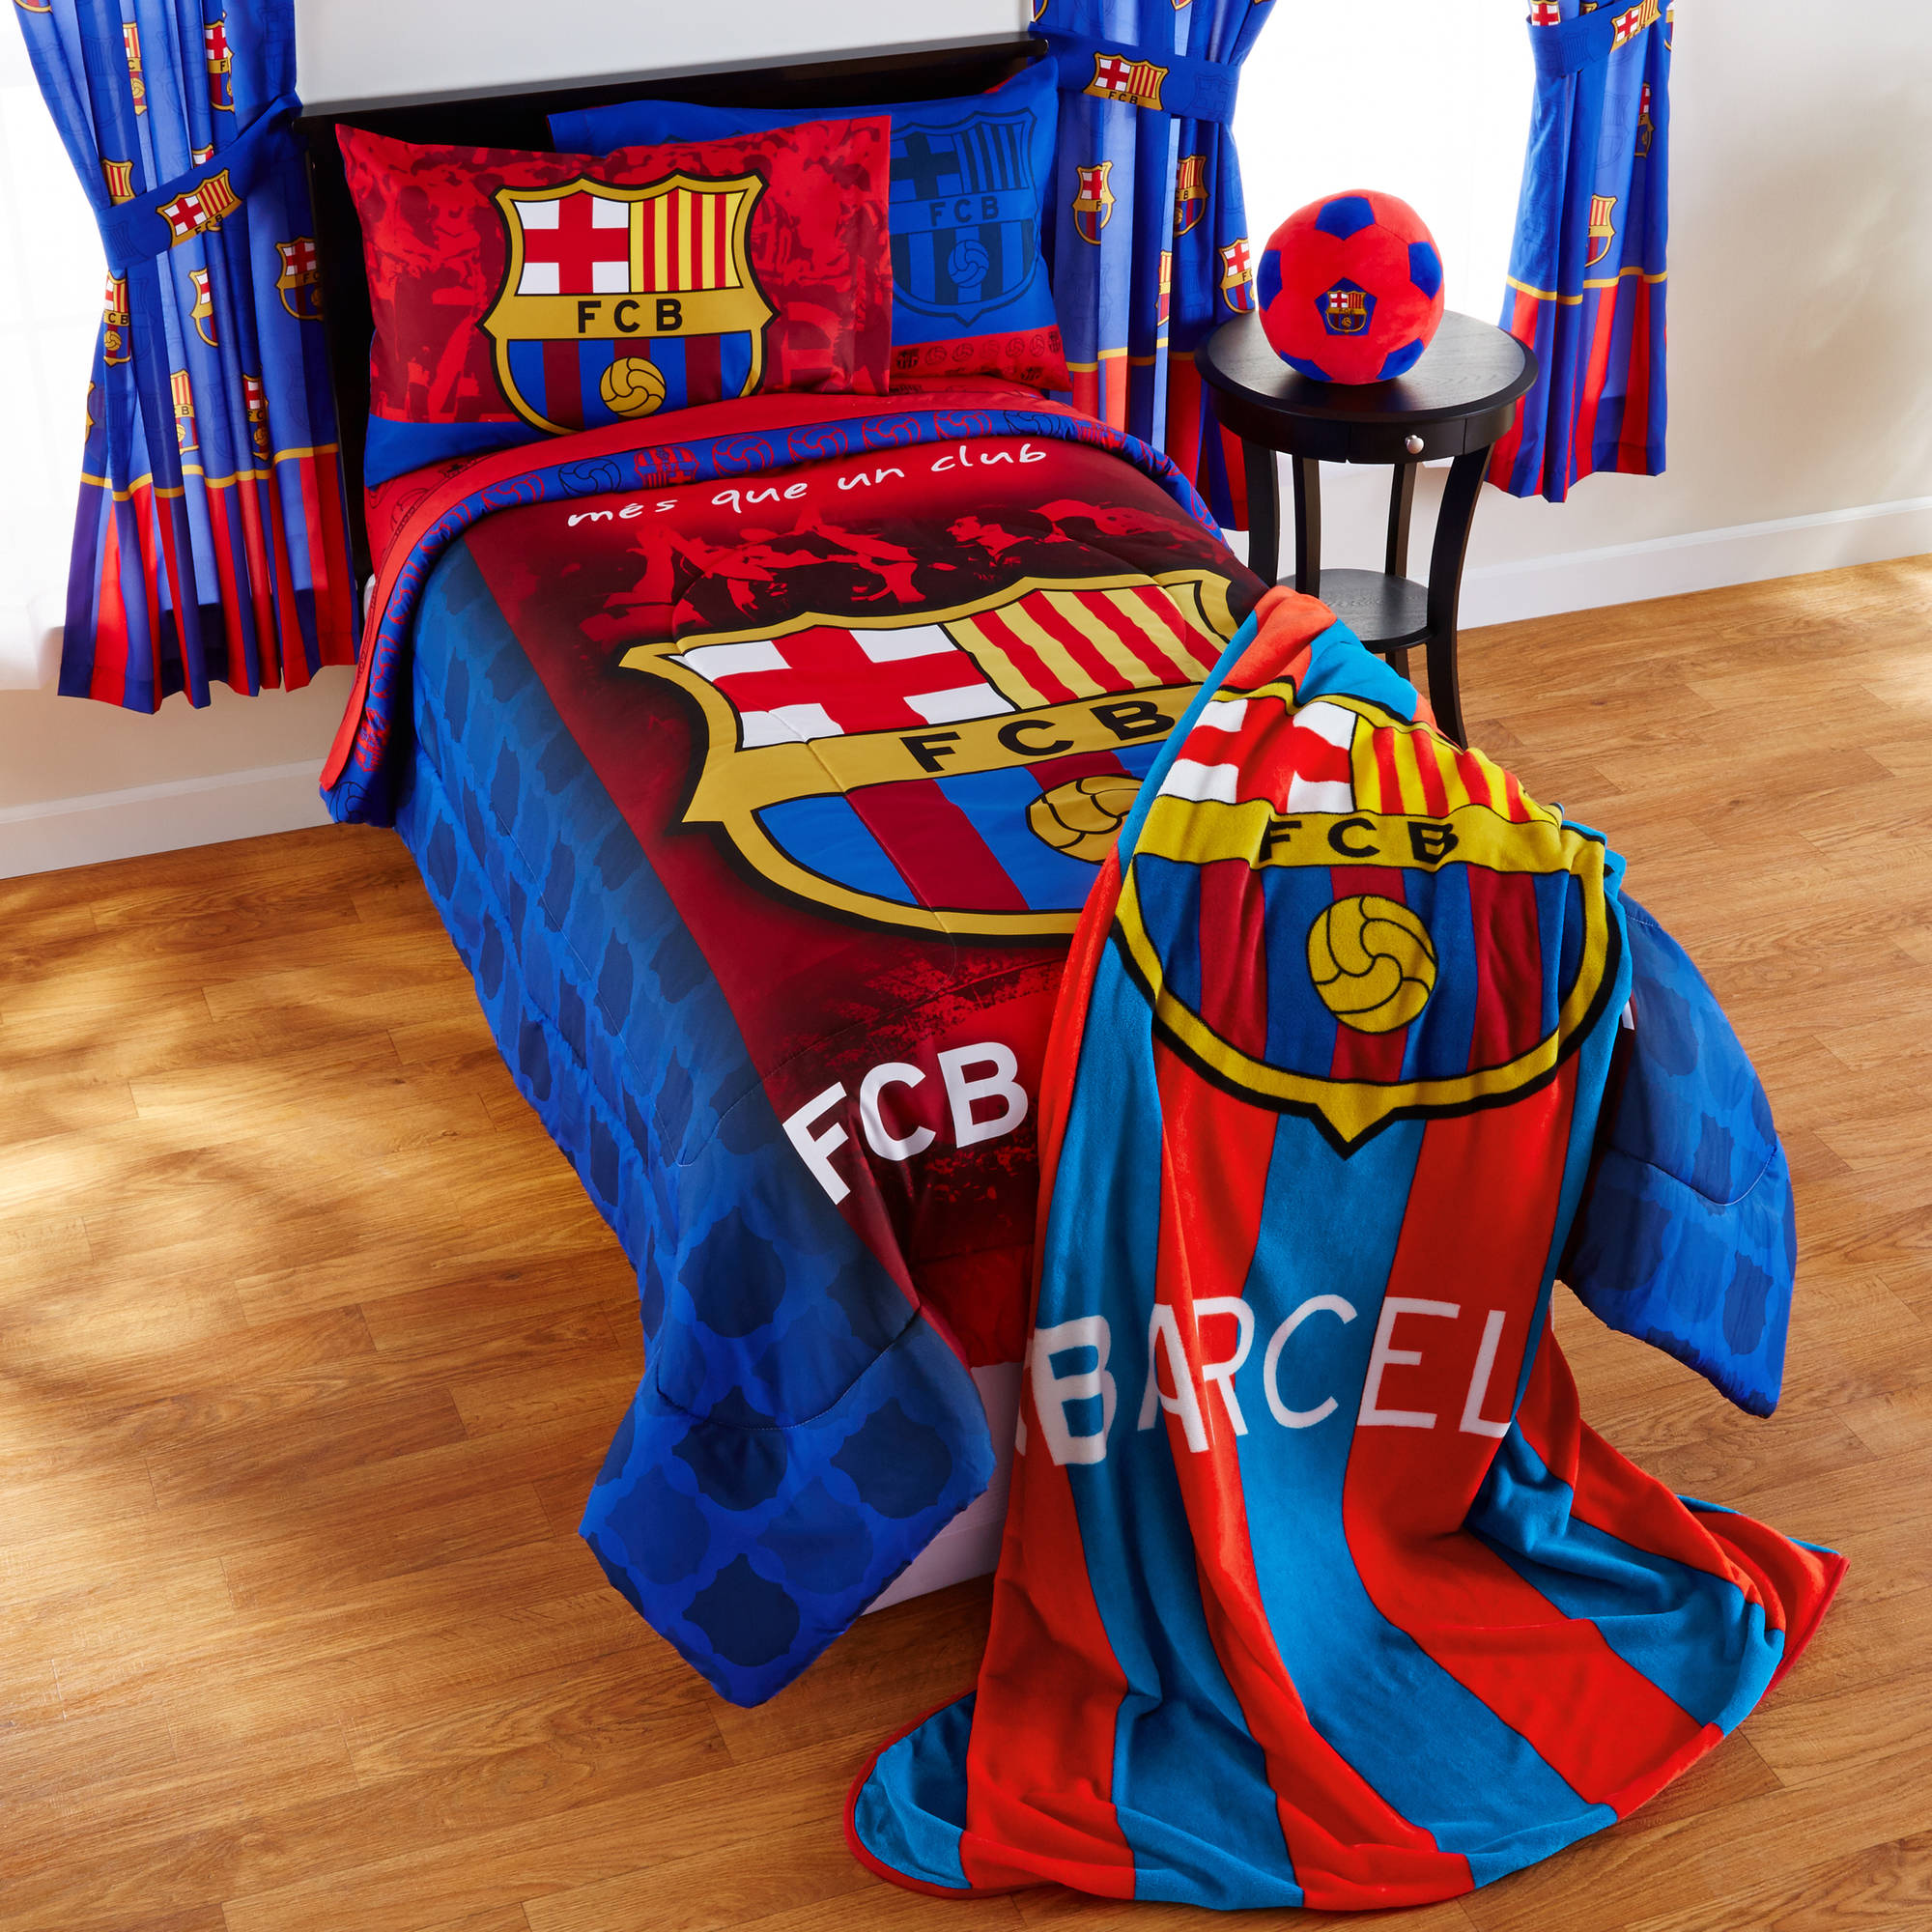 Barcelona FCB Soccer Bedding Sheet Set Walmart